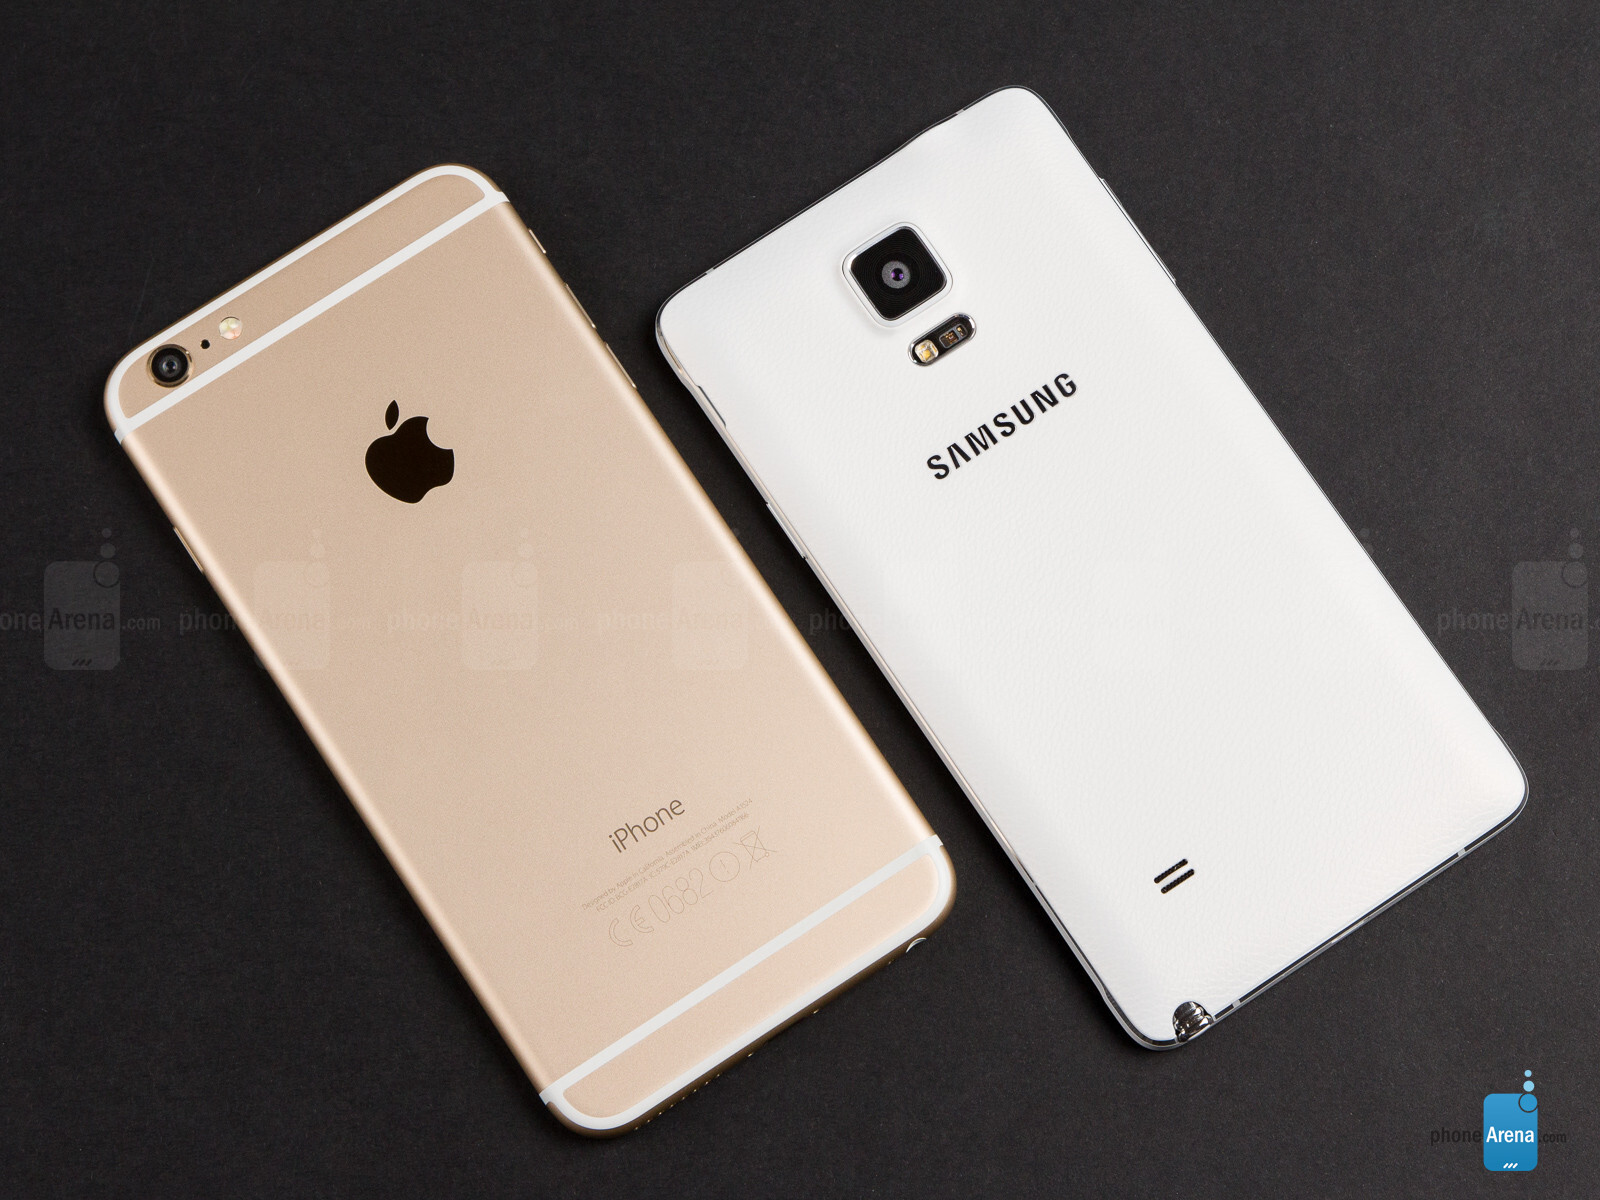 Samsung-Galaxy-Note-4-vs-Apple-iPhone-6-Plus-02.jpg